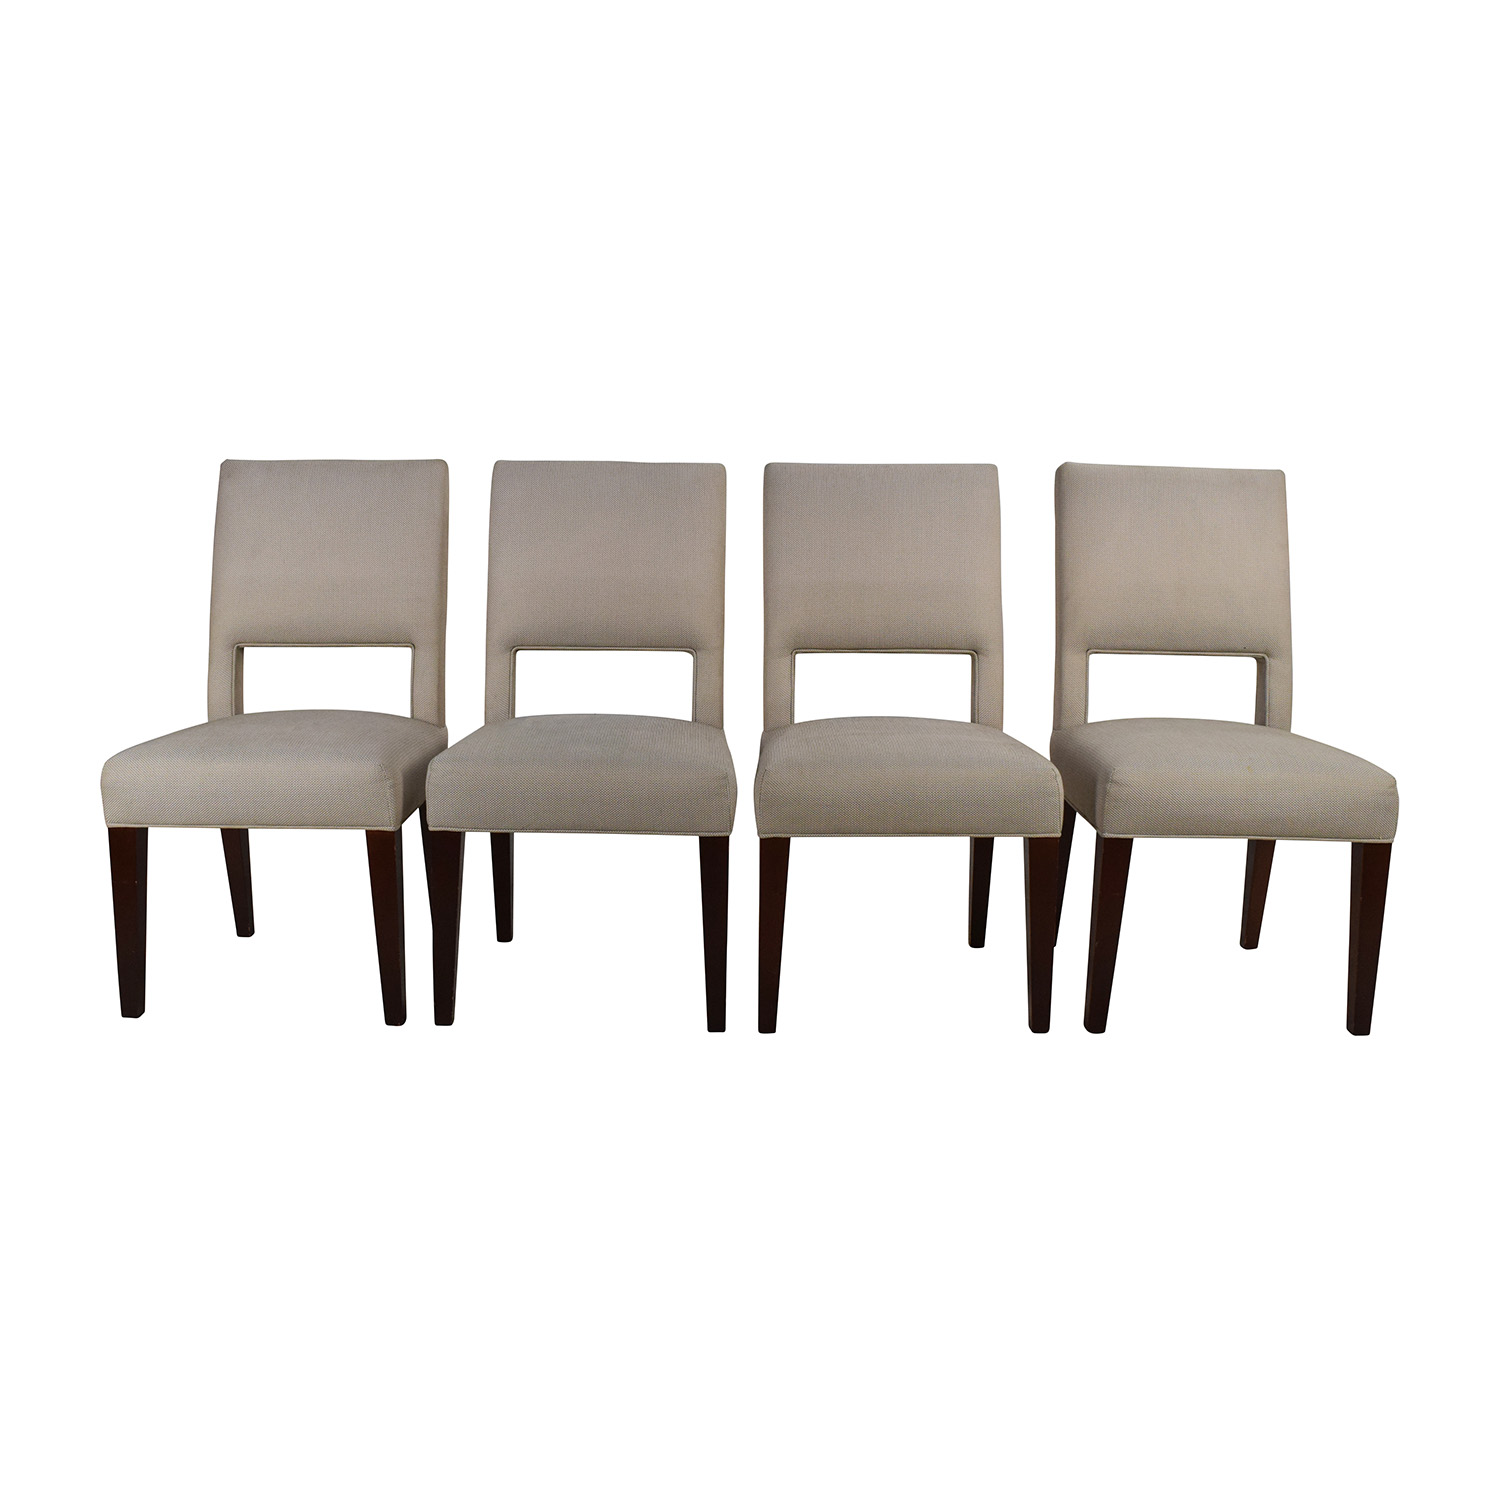 Set of 4 Custom Dining Chairs Chairs